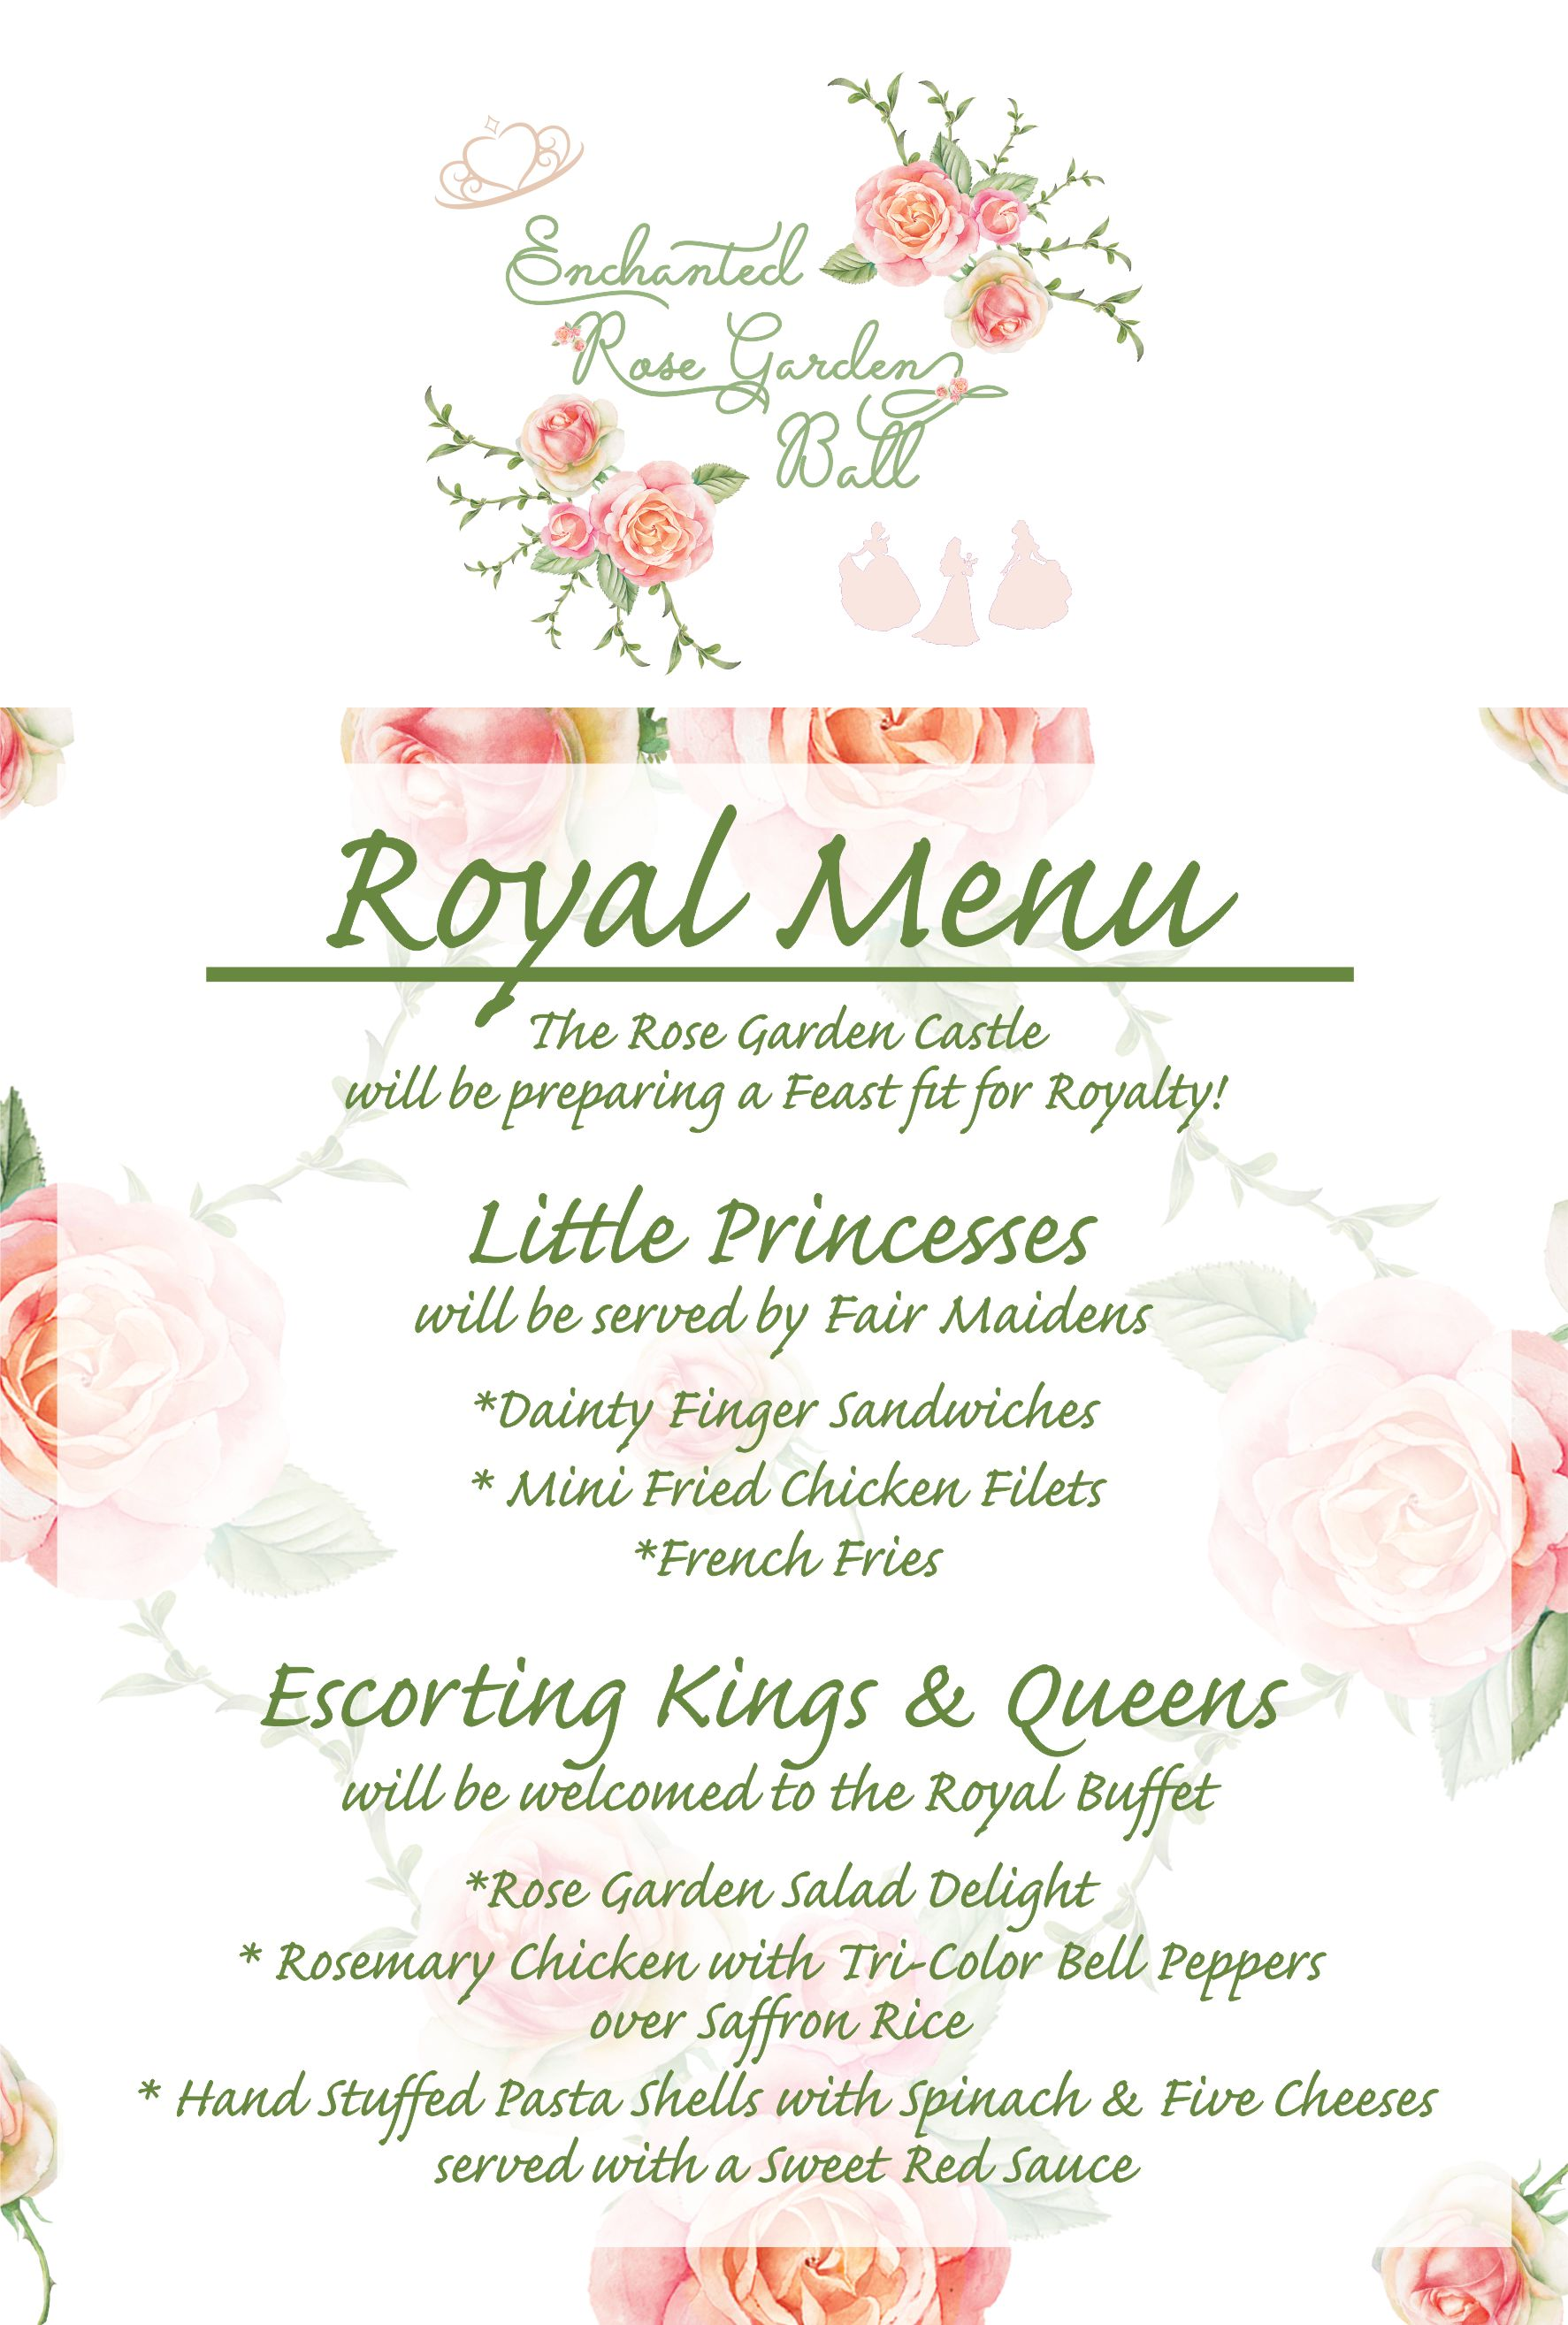 Enchanted Rose Garden Ball Menu